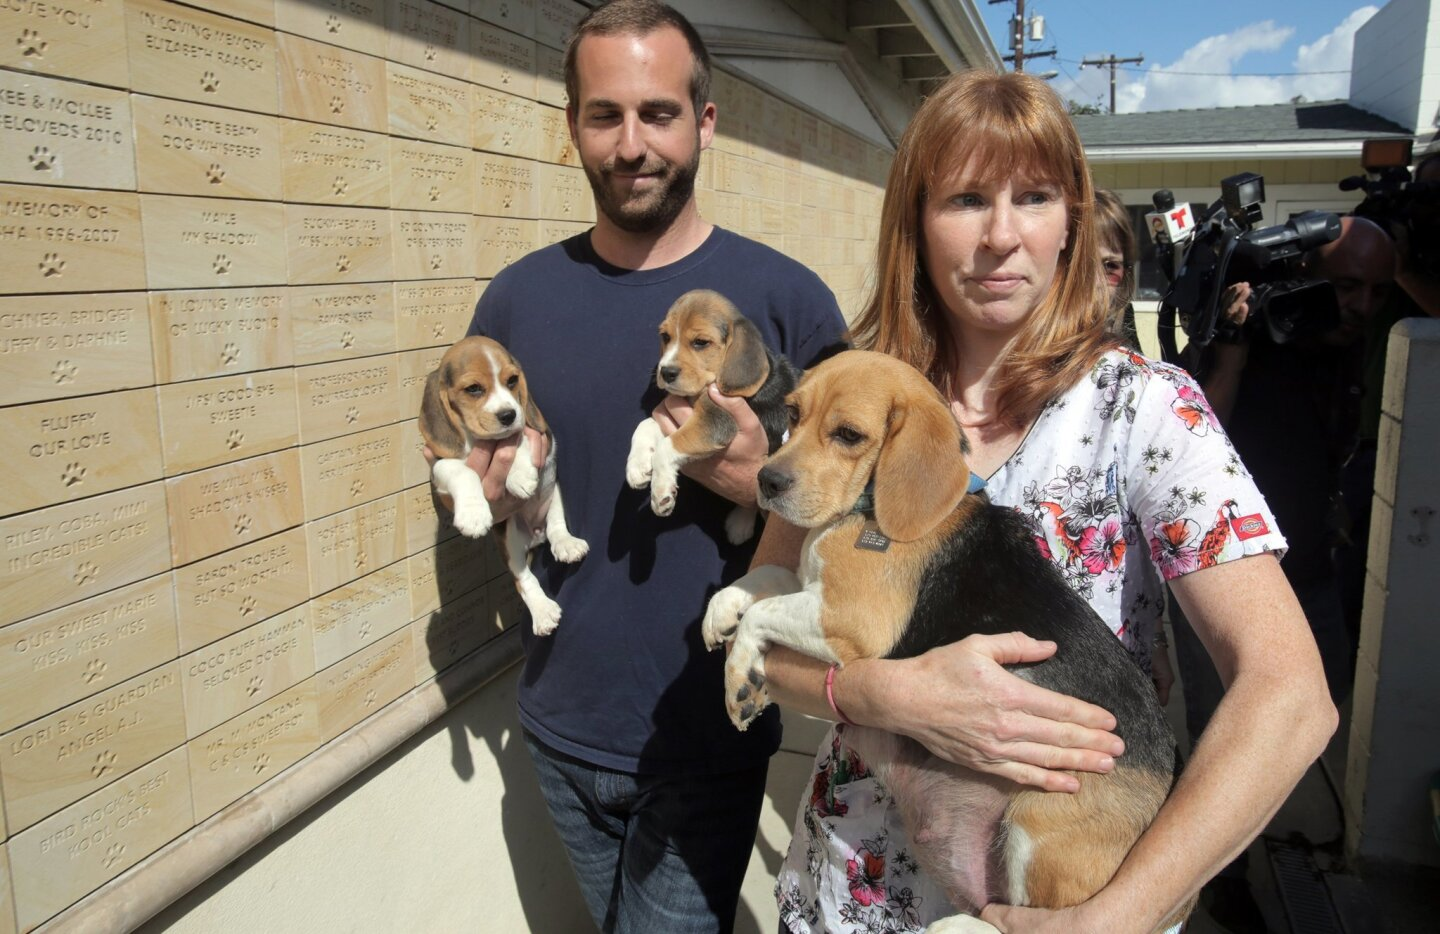 Veternarian Dr. Julie Moews, right, and Rancho Coastal Humane Society staff member Justin Pool carry beagles that arrived at the society to their kennels. Photo by Bill Wechter